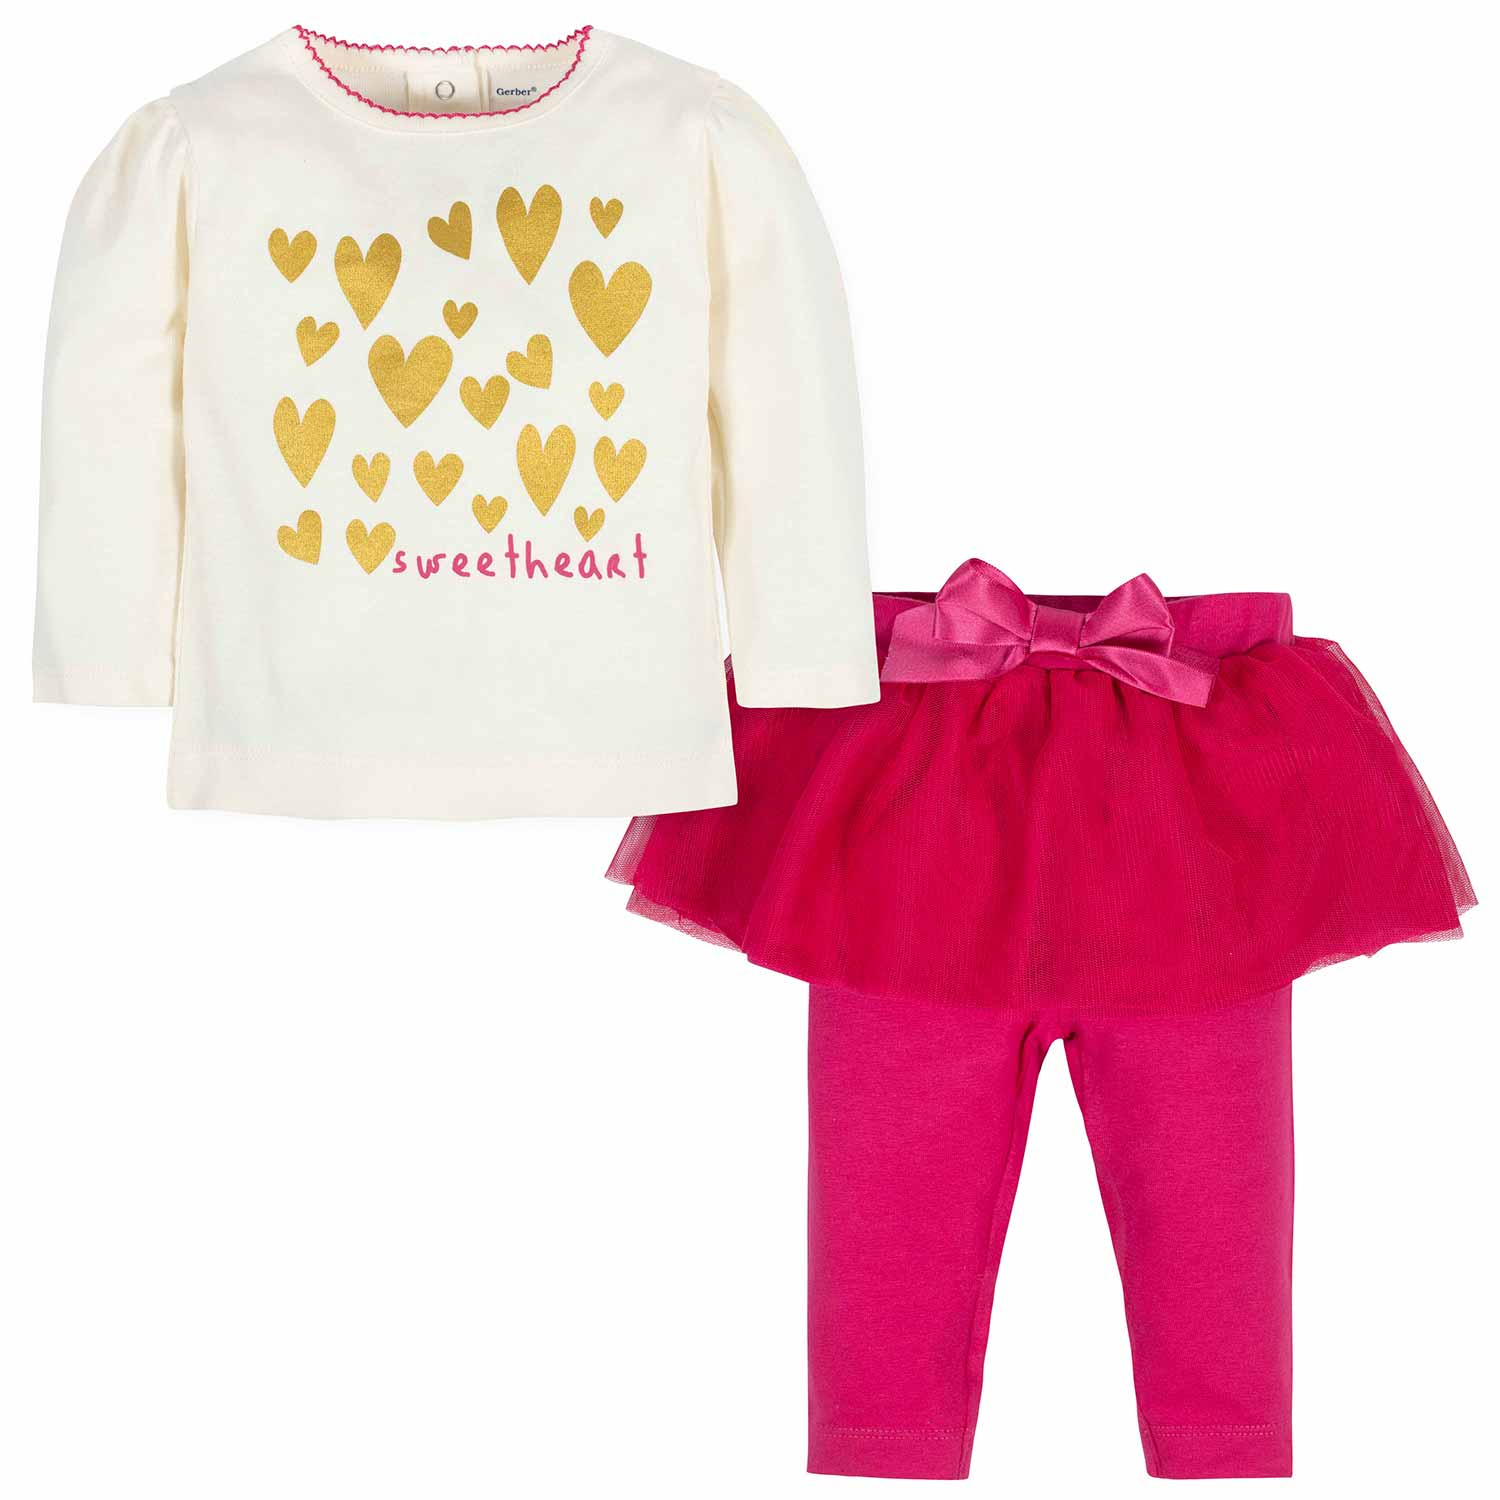 2-Piece Toddler Girls Sweetheart Shirt and Tutu Legging Set